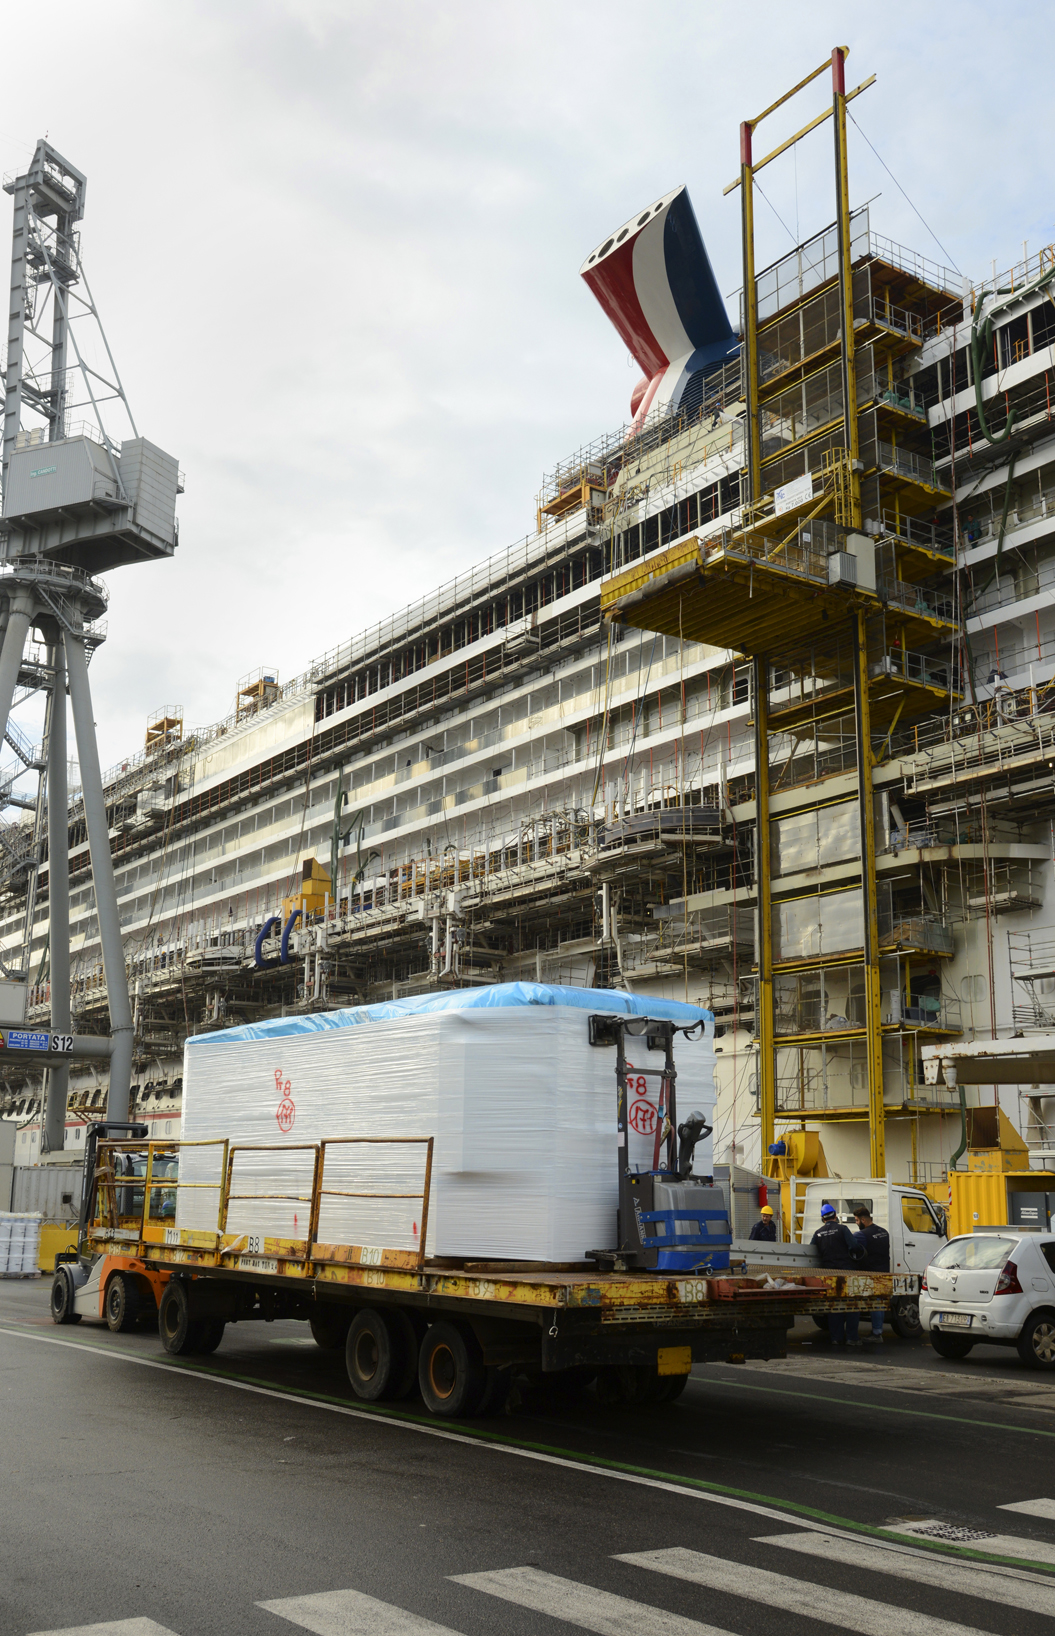 Construction Continues on Carnival Vista in Preparation for Spring 2016 Debut